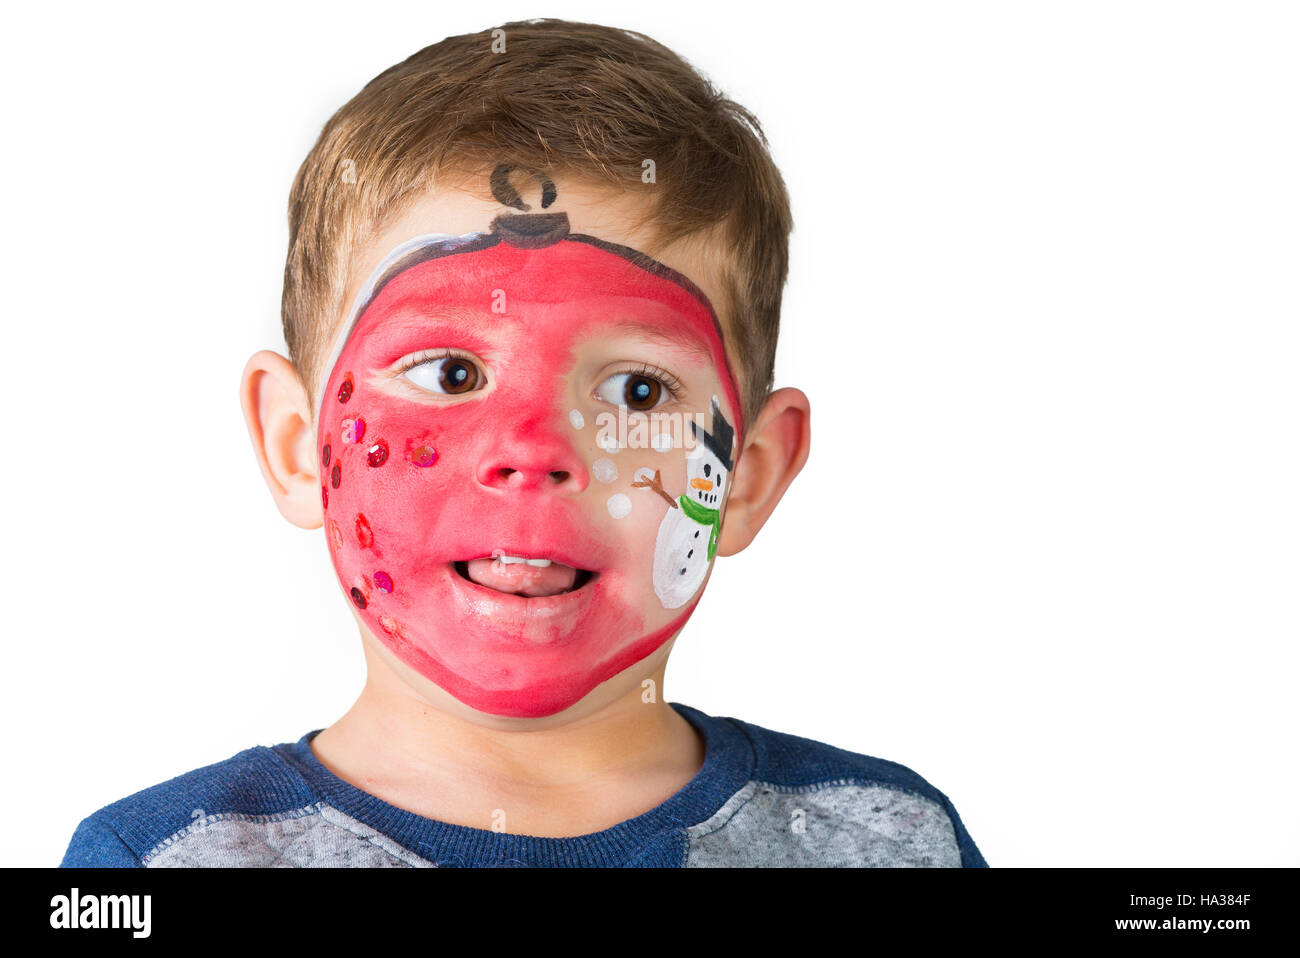 Christmas Face Paint.Christmas Face Painting Stock Photo 126691391 Alamy